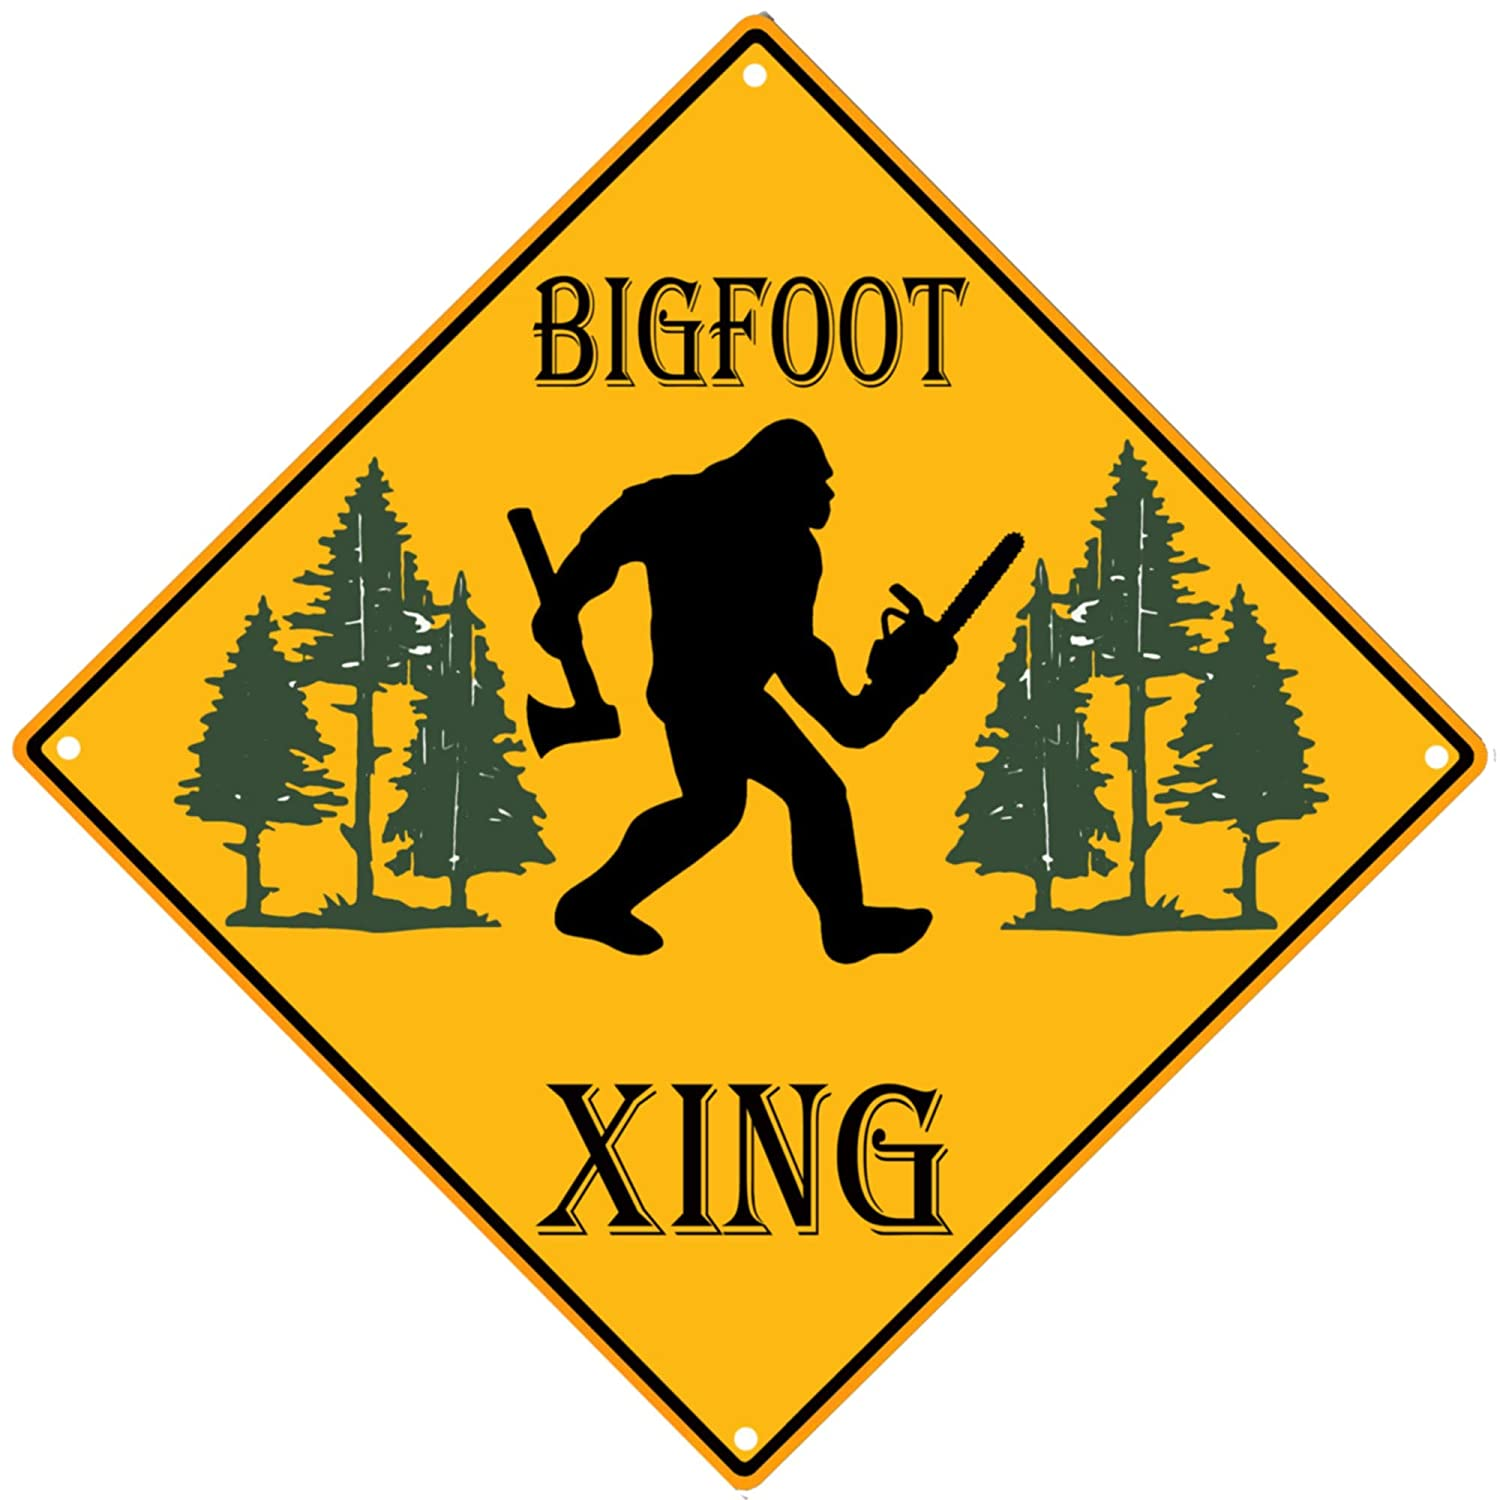 PXIYOU Funny Sasquatch Bigfoot Crossing Warning Sign Vintage Metal Tin Sign for Man Cave Cafe Bar Pub Beer Wall Decor 12X12Inch